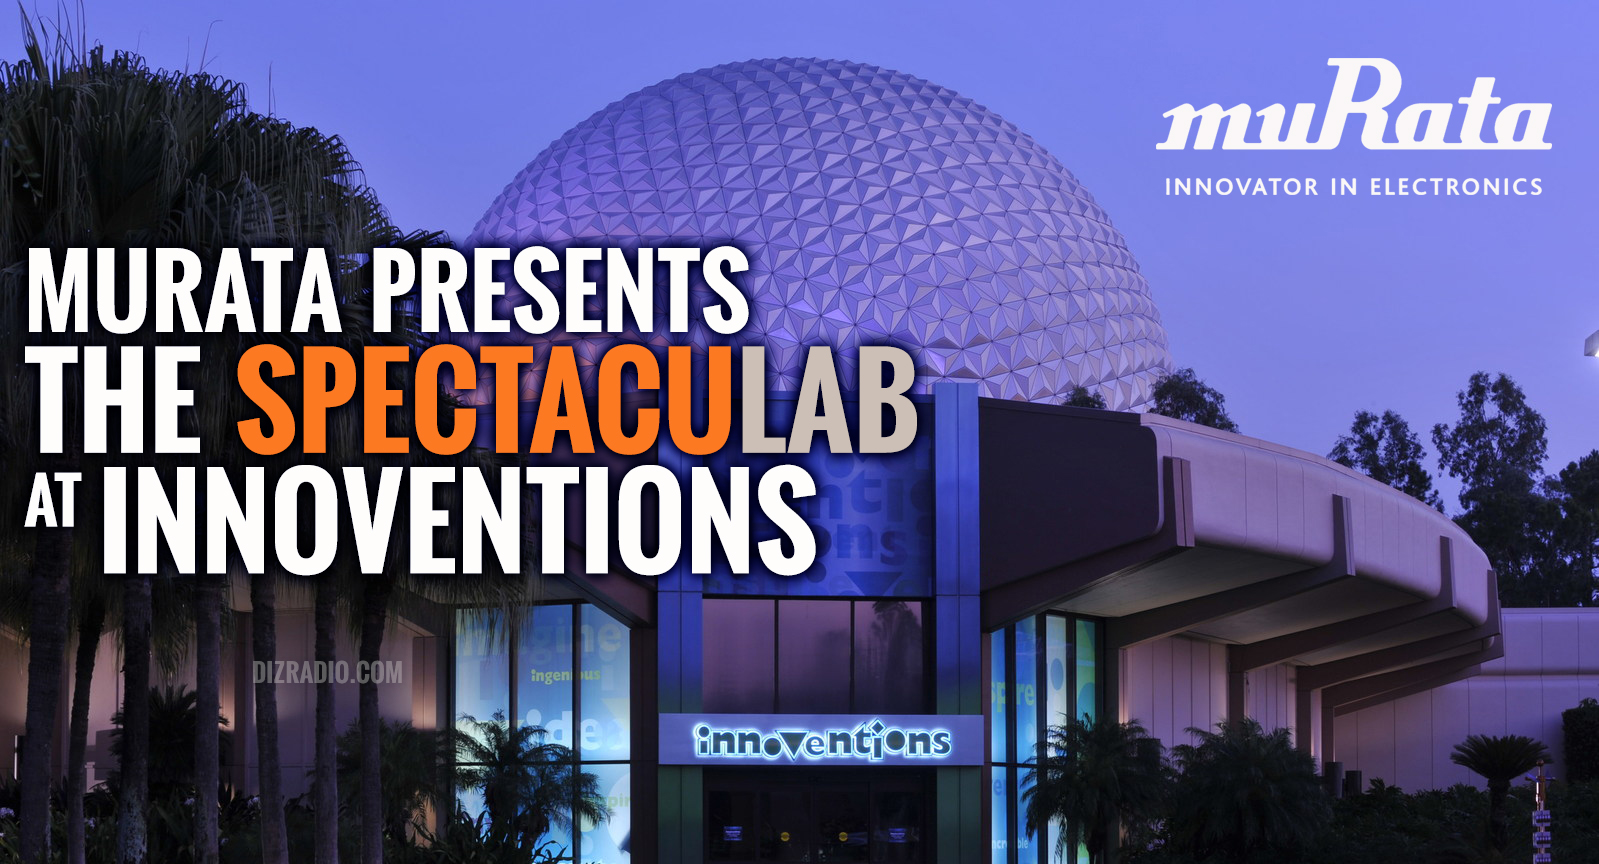 Murata announces The SpectacuLAB coming to the Innoventions Pavilion in Epcot at the Walt Disney World Resort